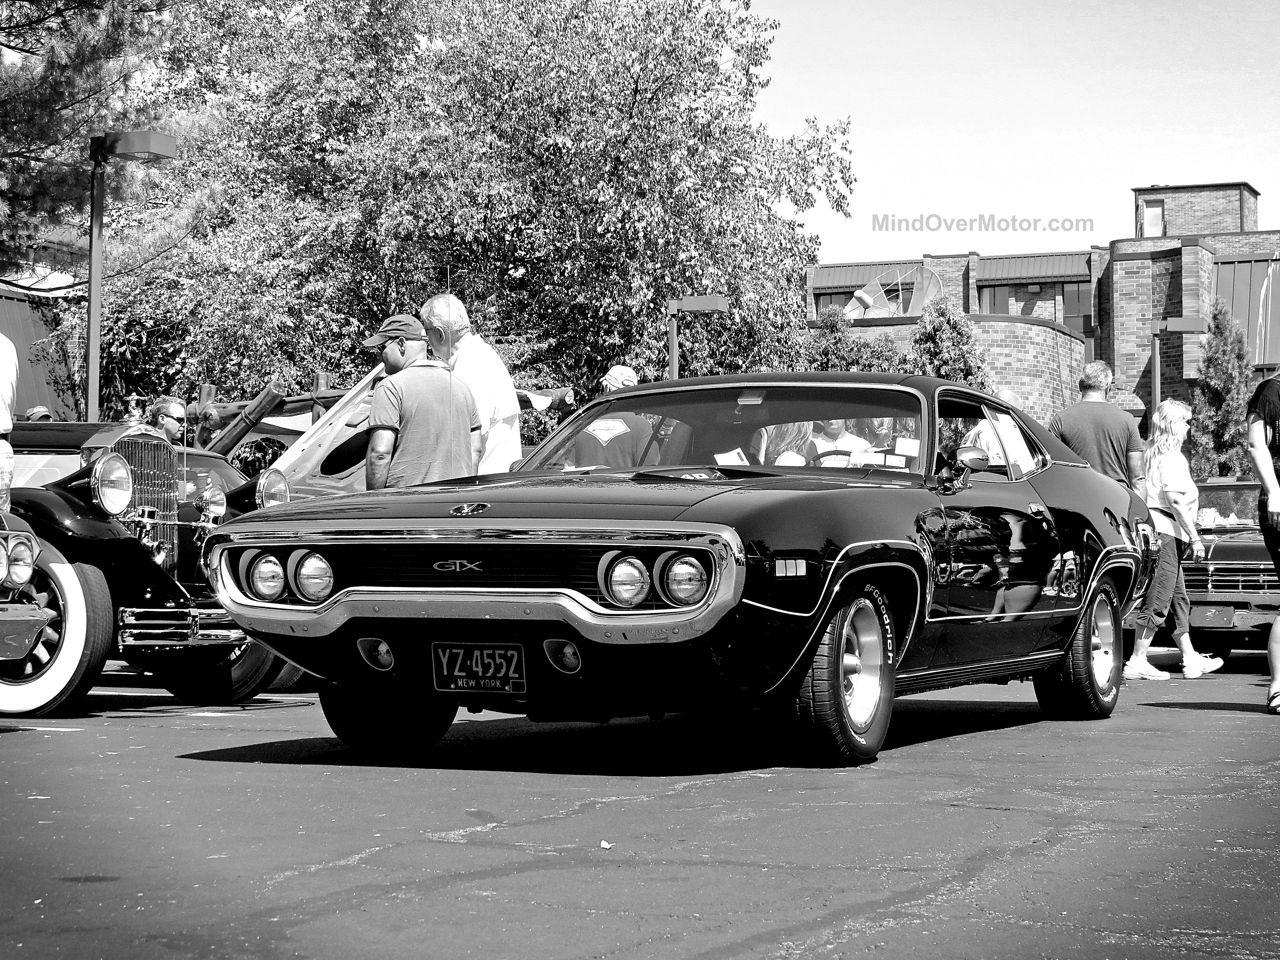 Lead East Plymouth GTX